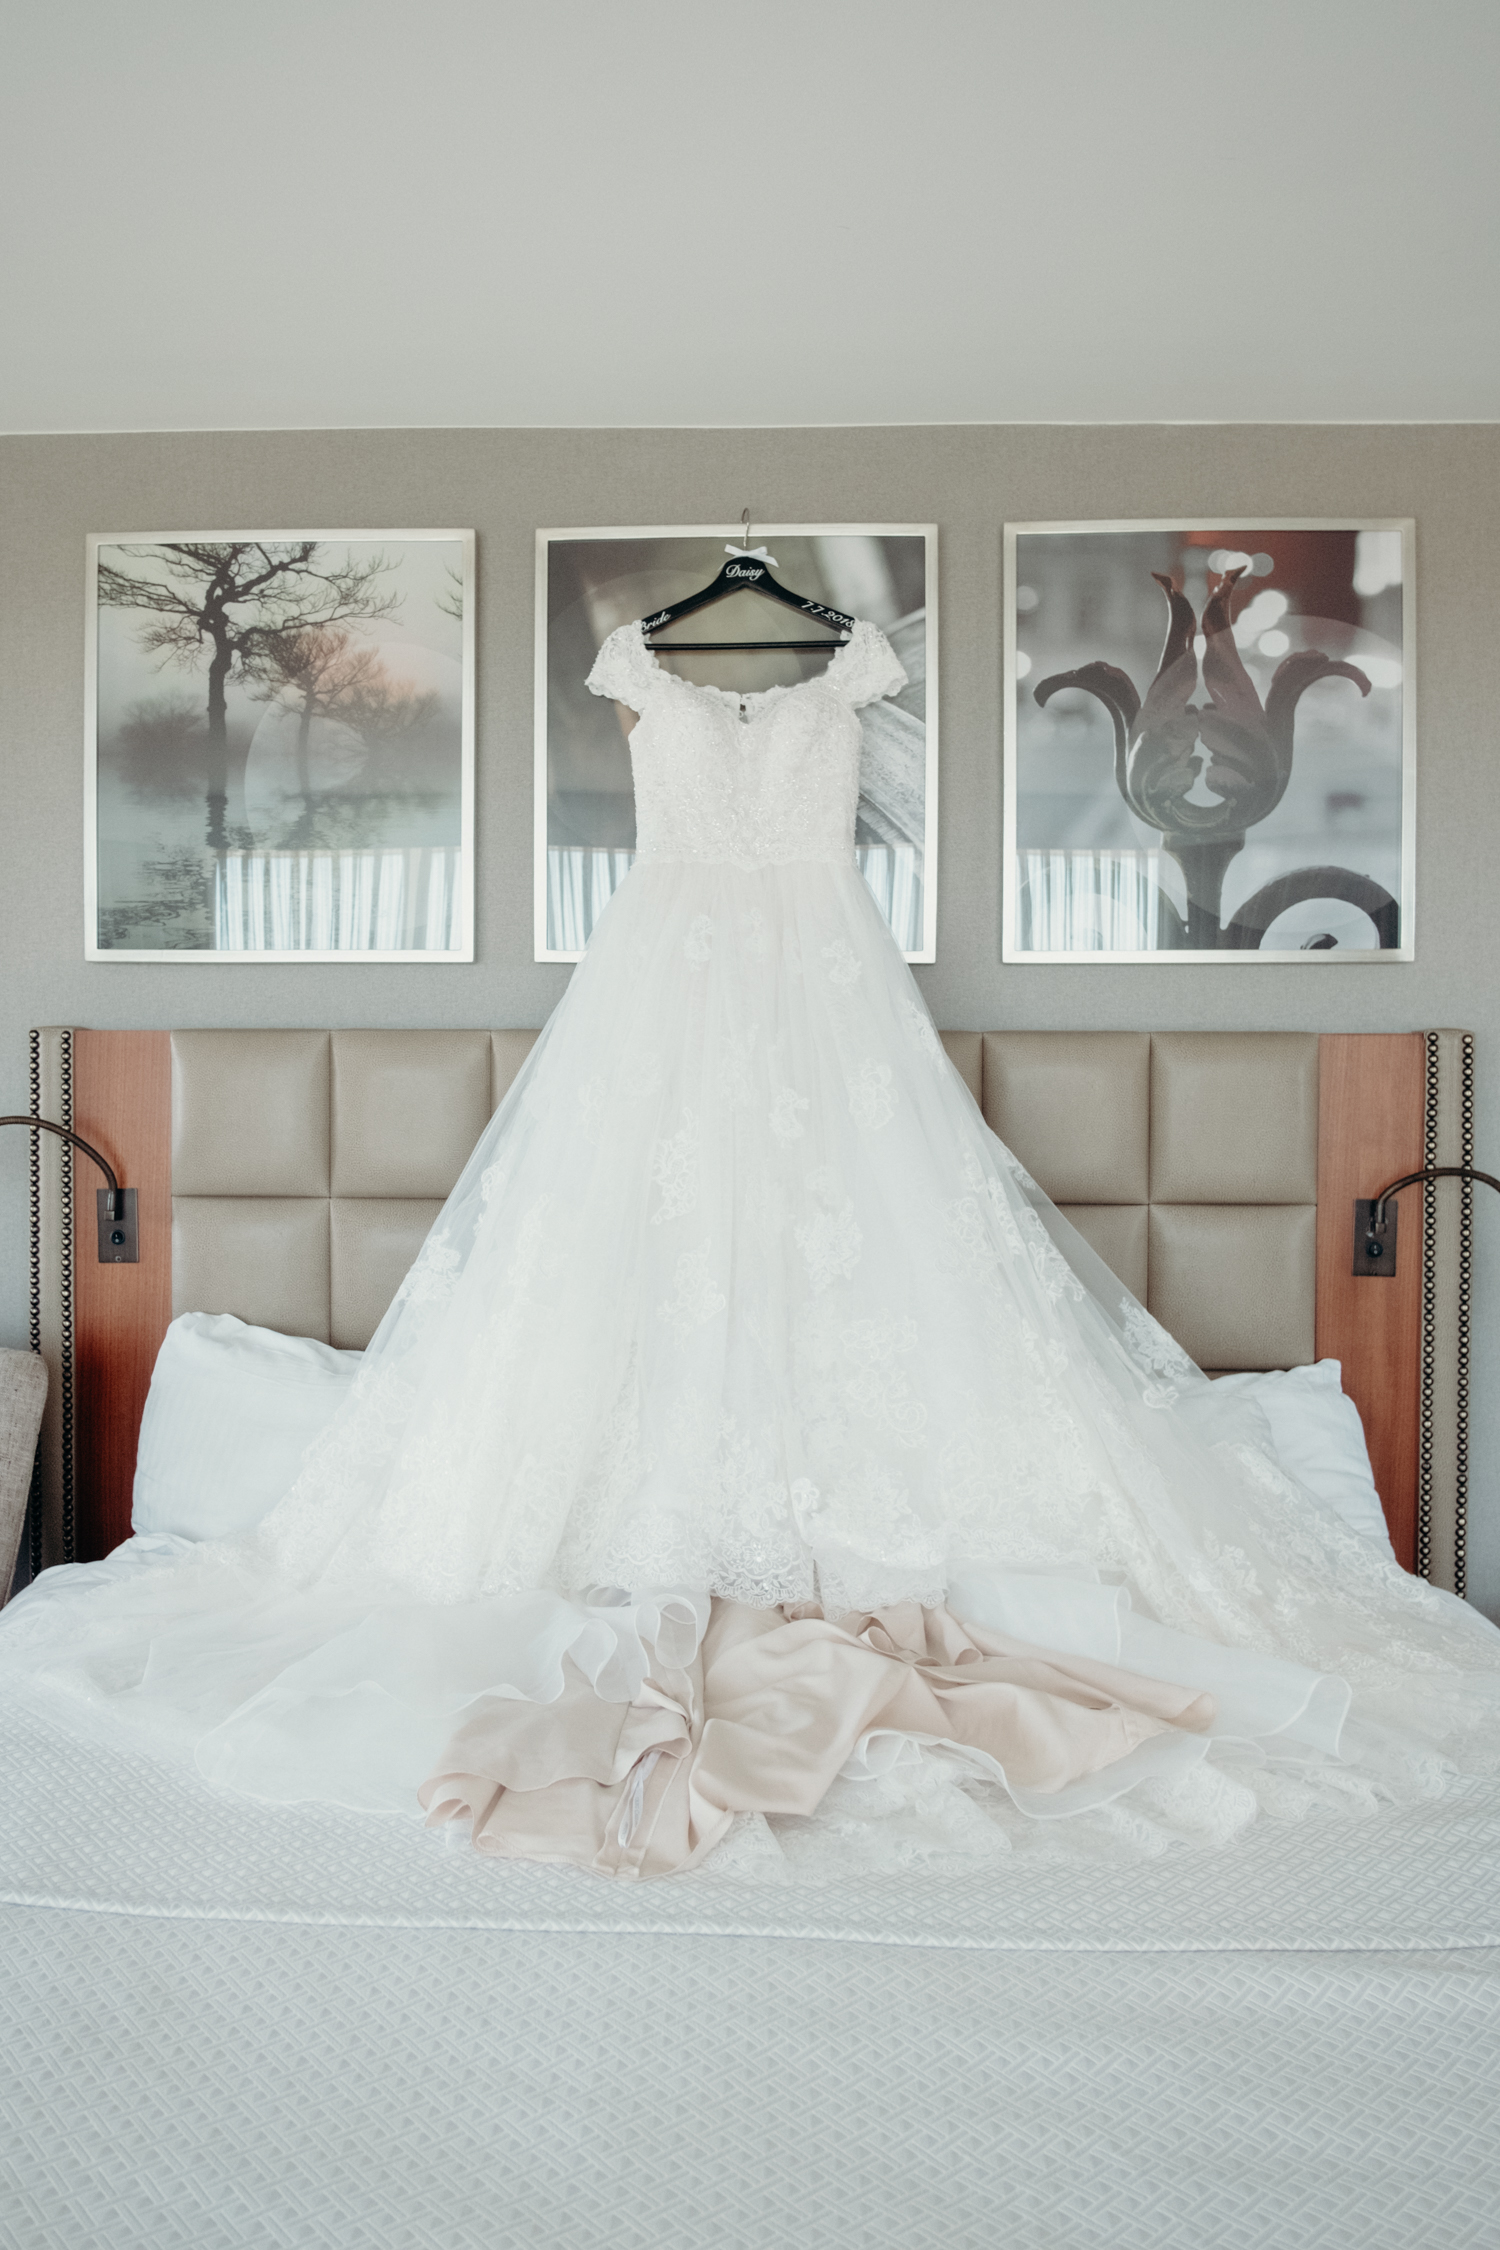 A bride's a-line wedding dress hangs above a bed at Lansdowne Resort.